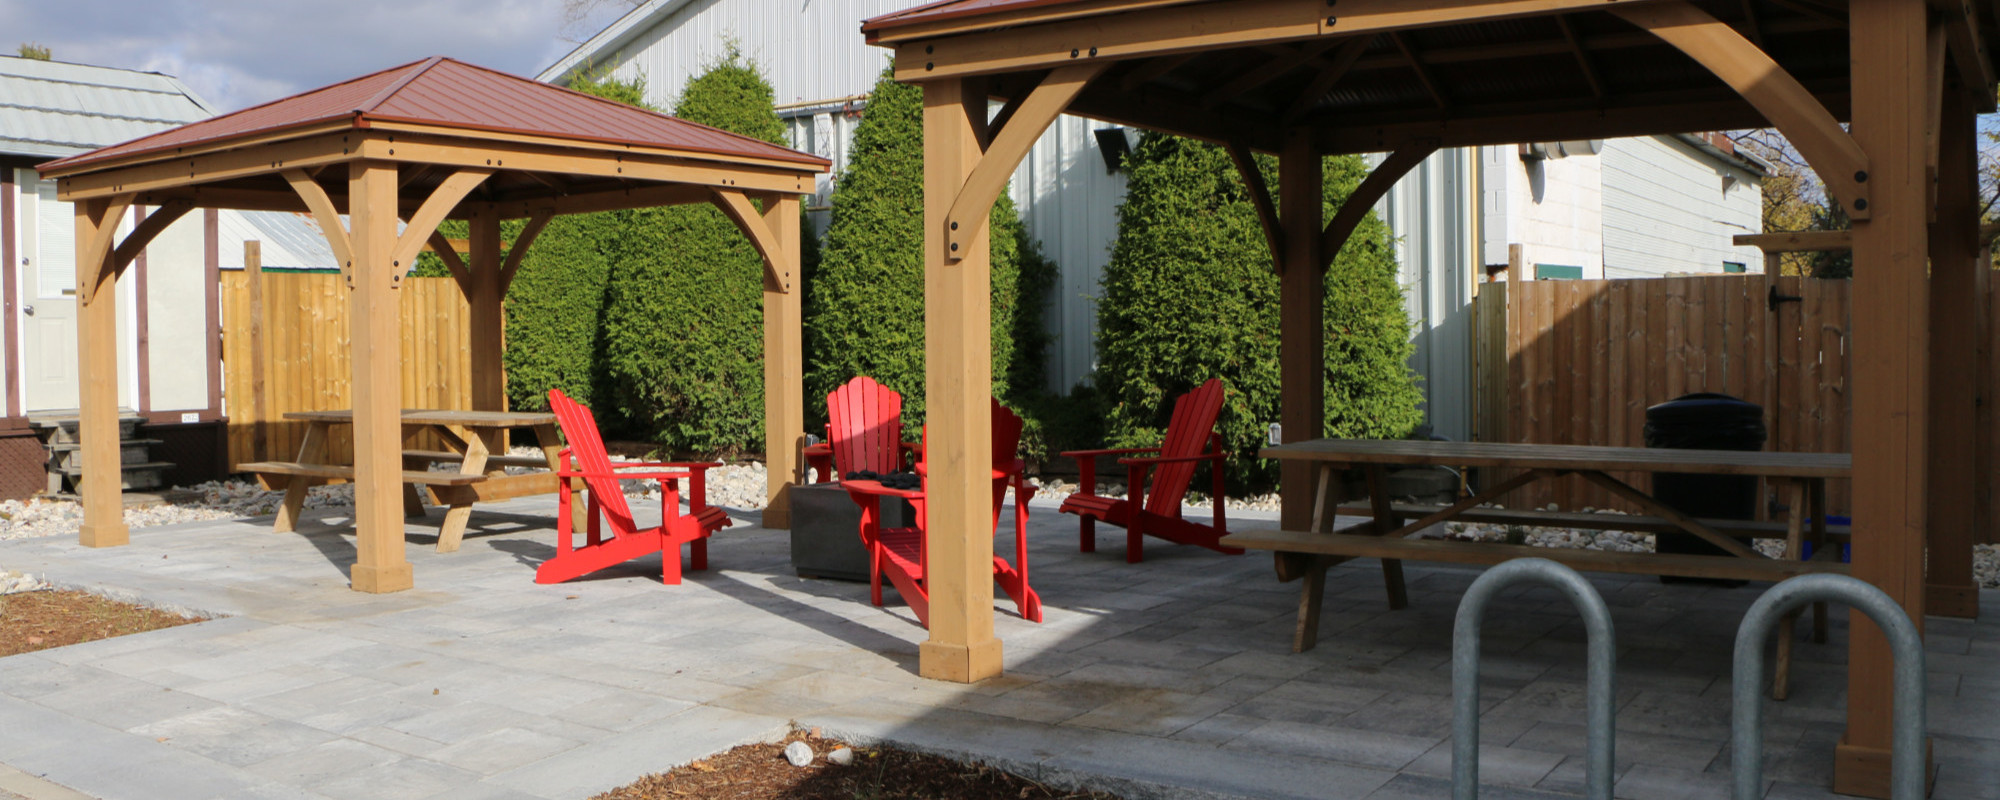 Ungers Market - Our Store - Patio